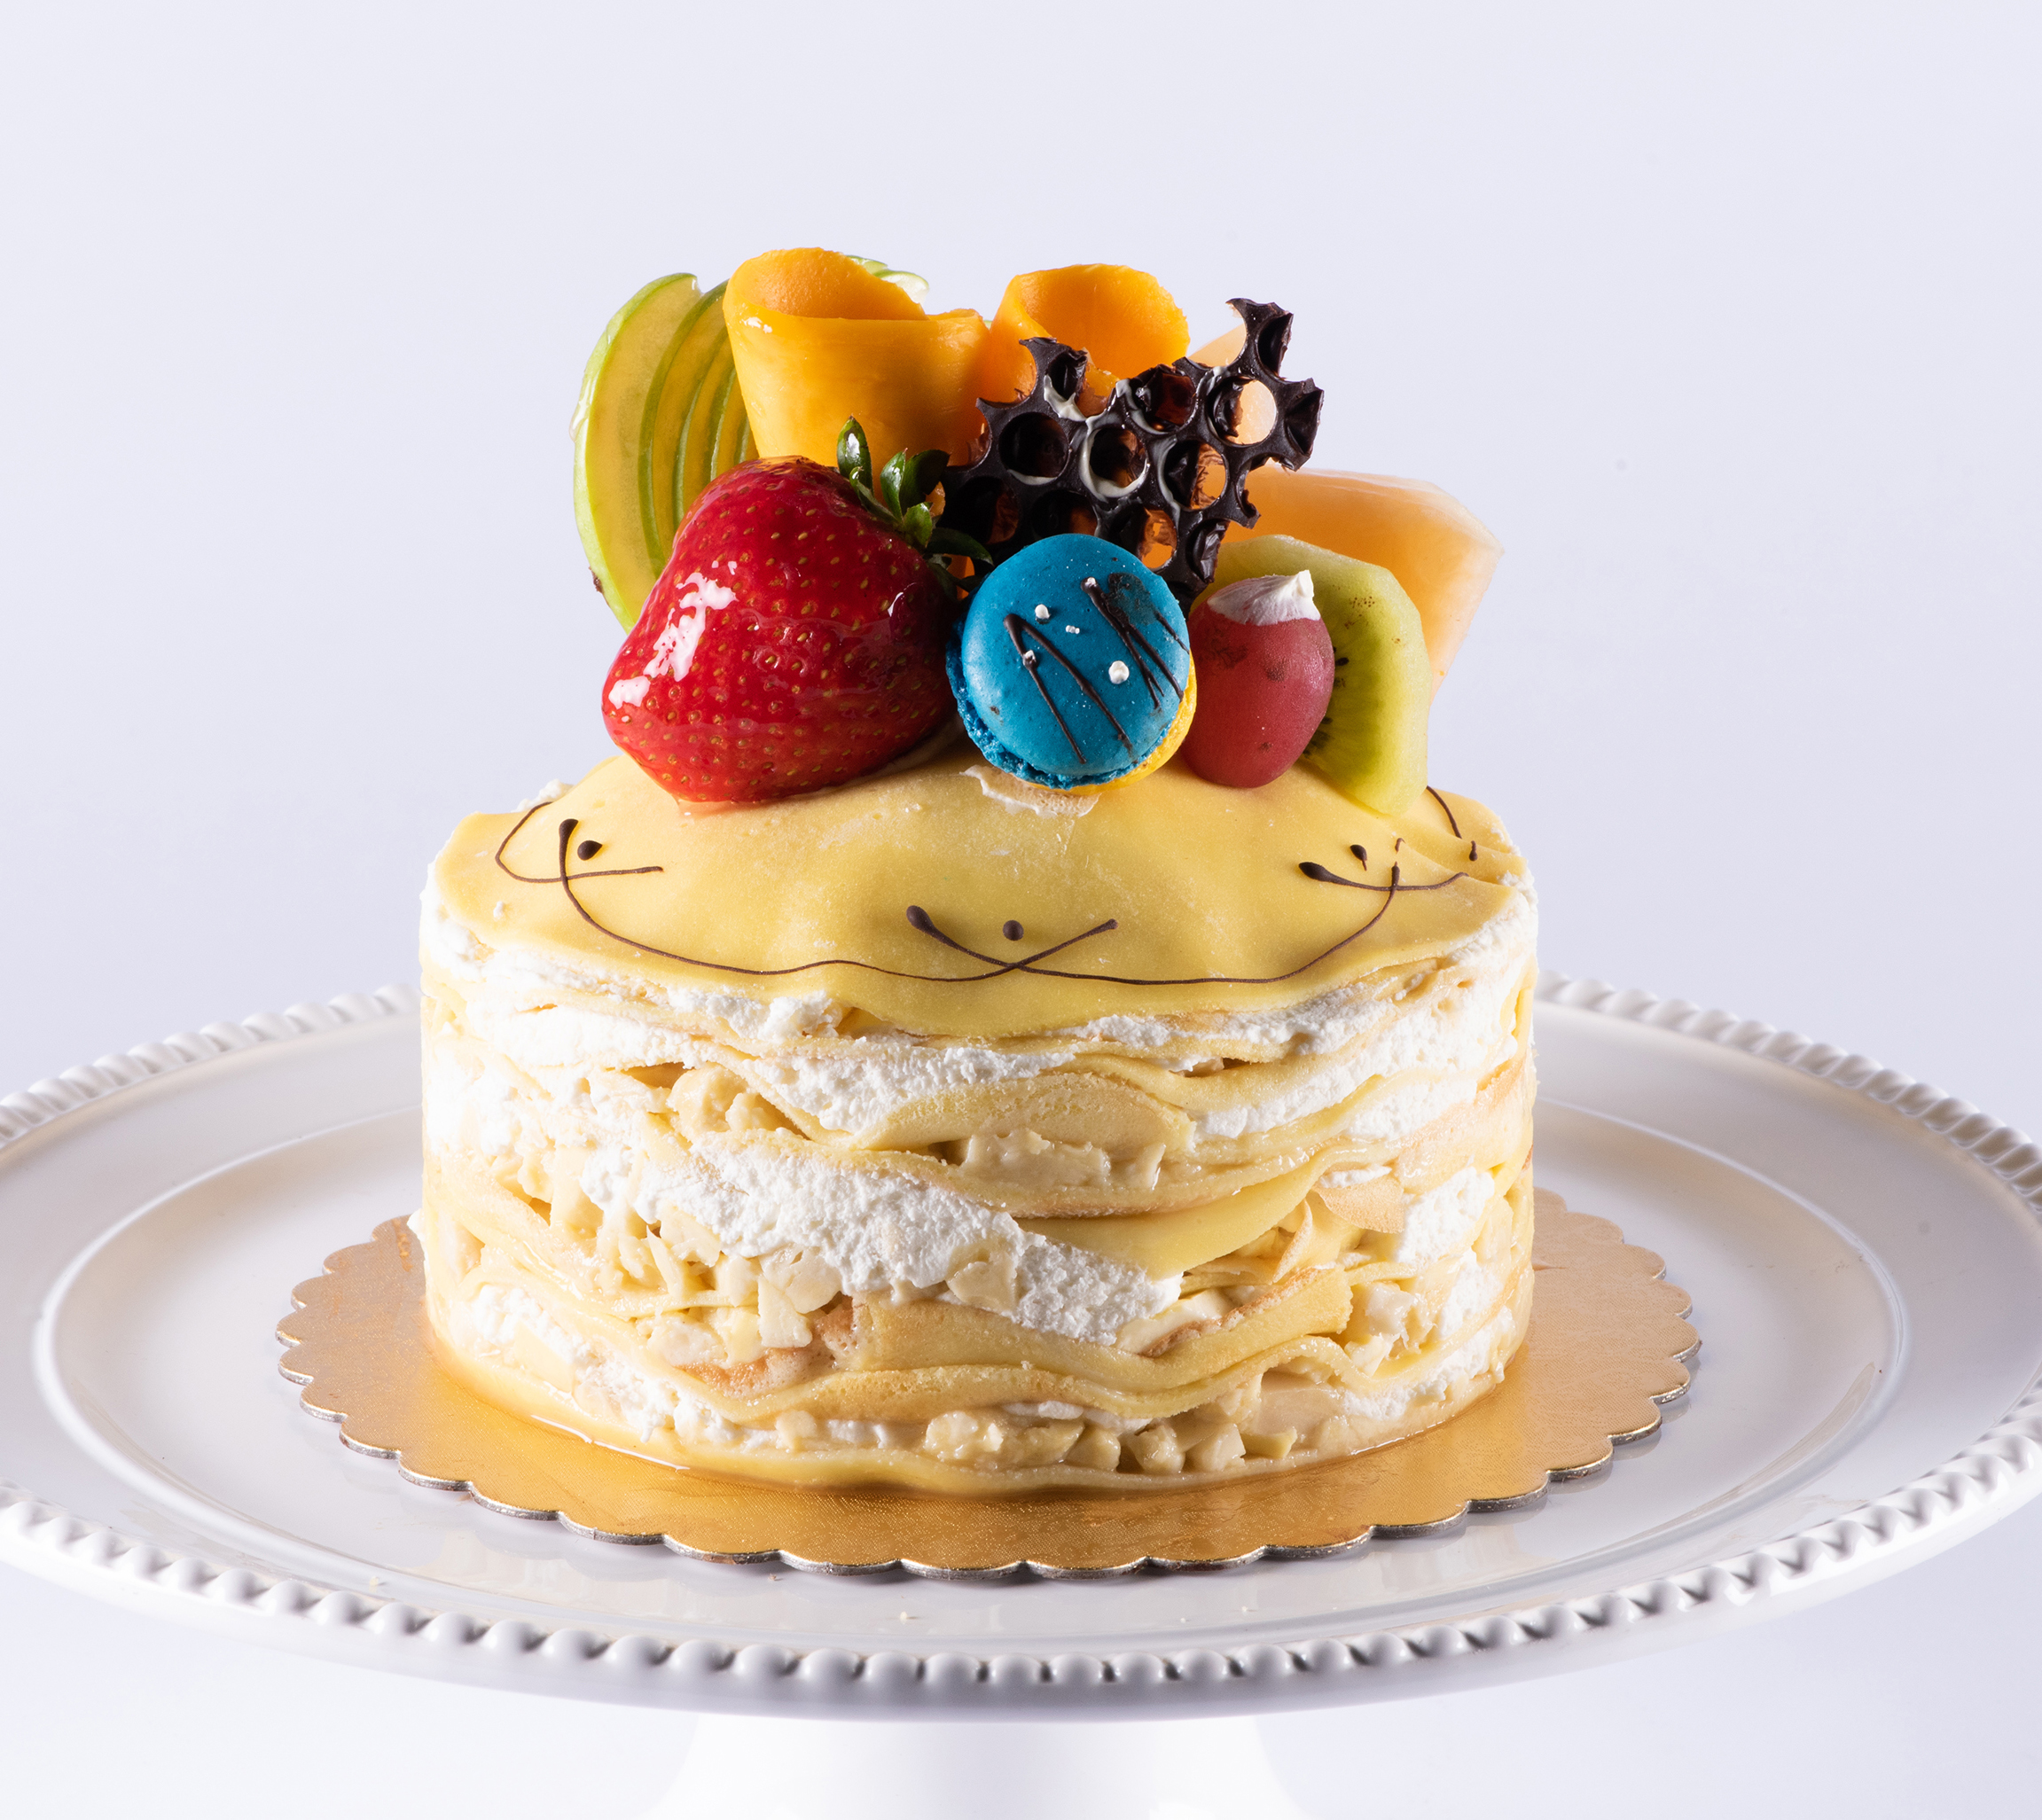 2018_10_10 Patisserie Gateau-1692 SMALL CROPPED.jpg